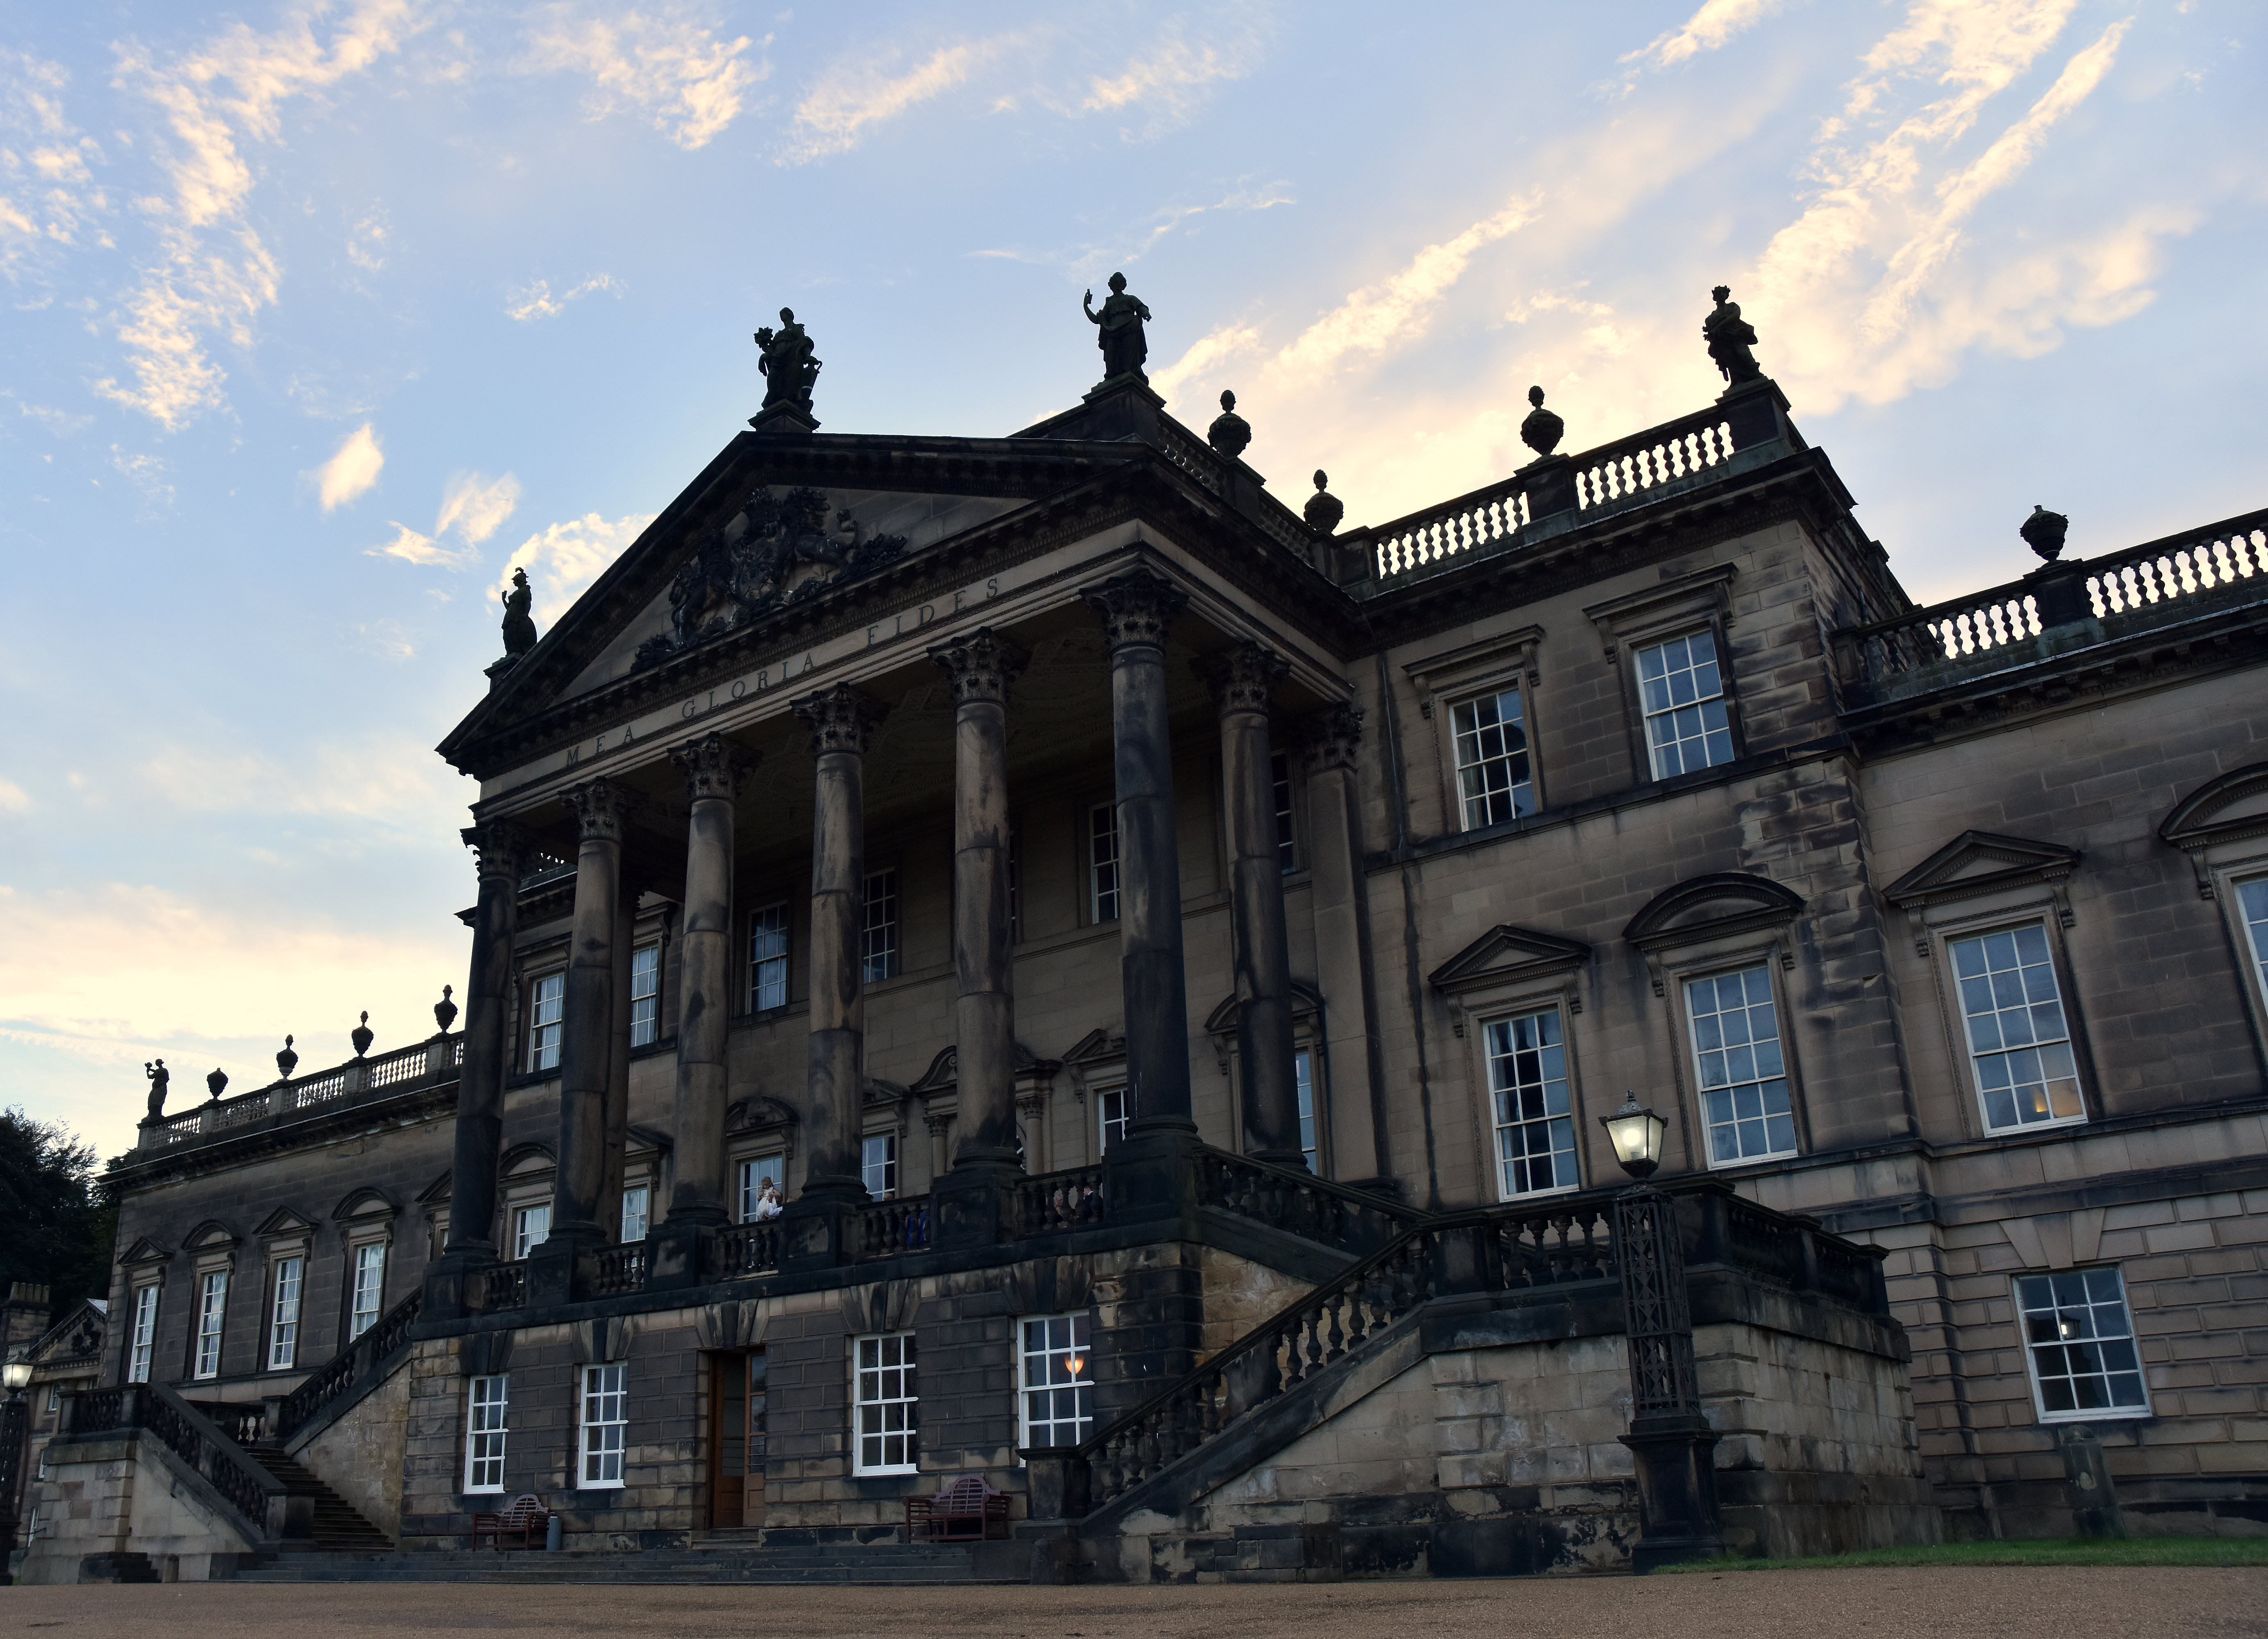 Wentworth Woodhouse is one of the country's most magnificent Stately Homes